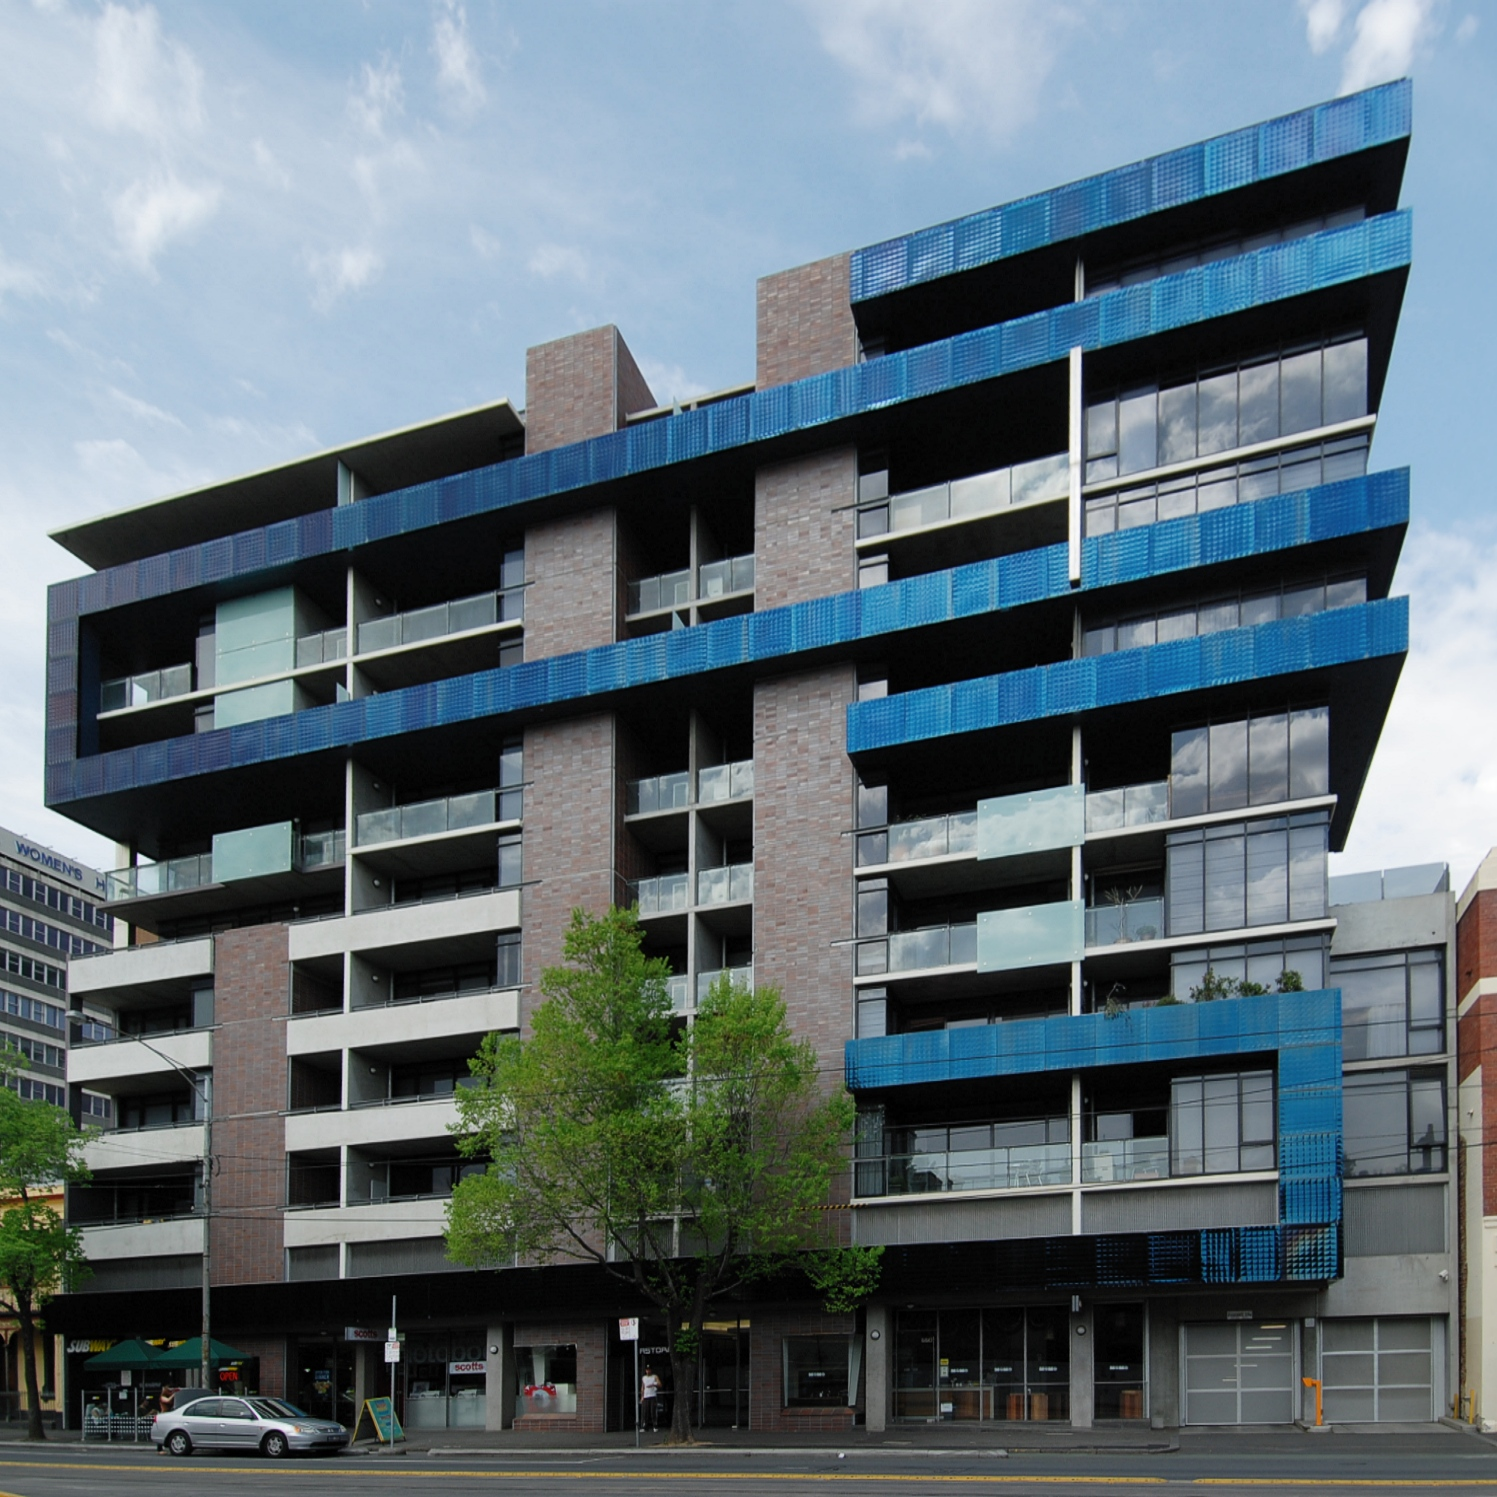 File:Astorial apartments Melbourne 2011.jpg - Wikimedia ...